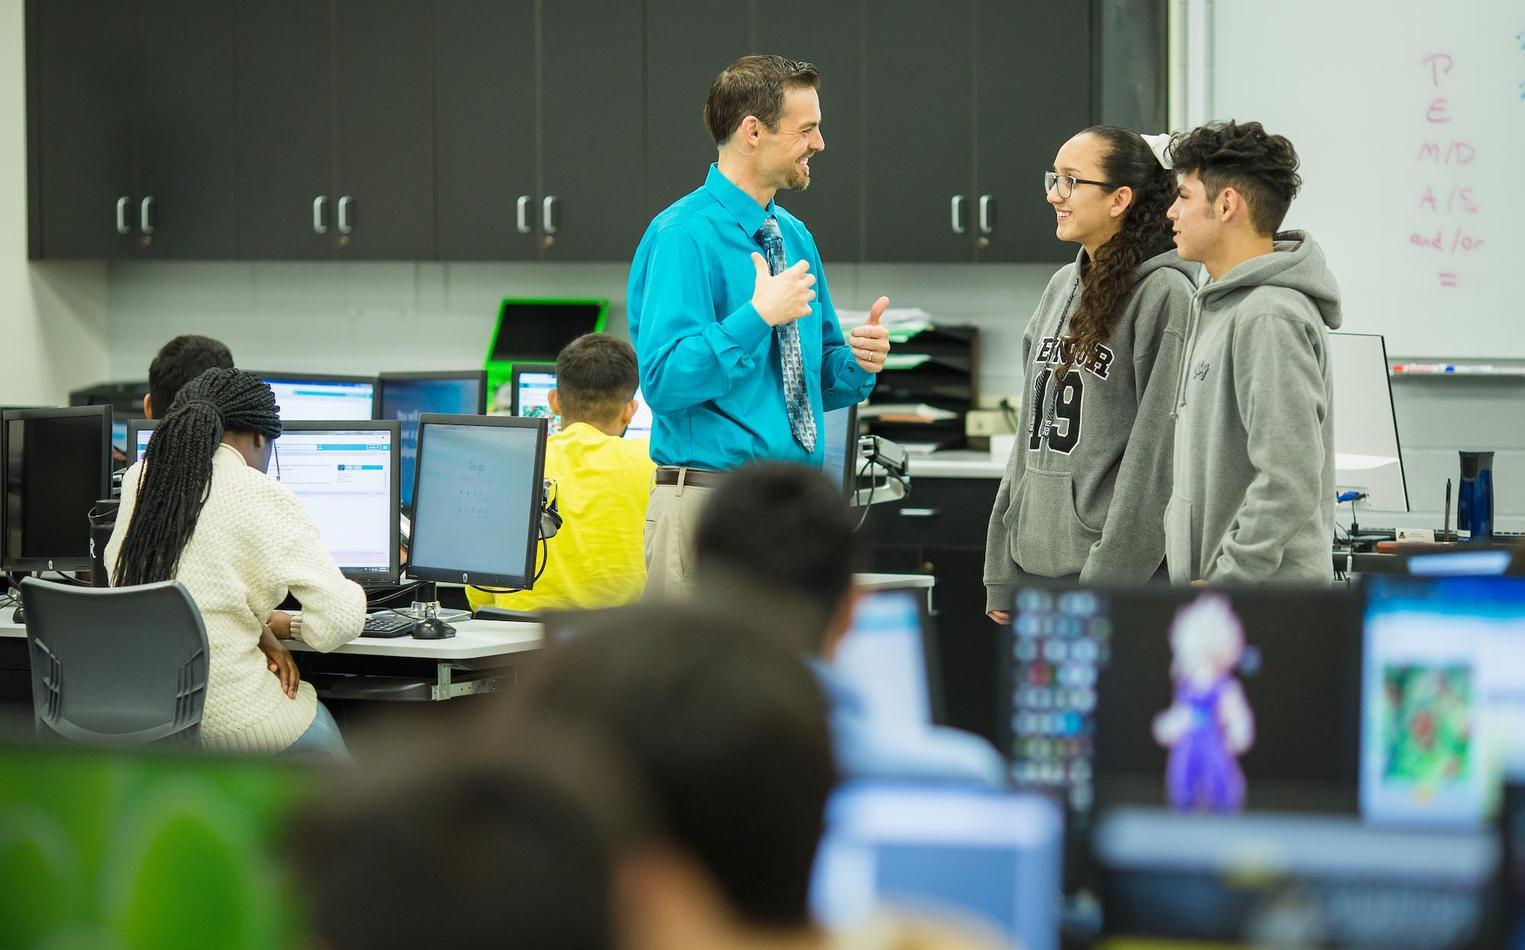 Computer science teacher talking with students.